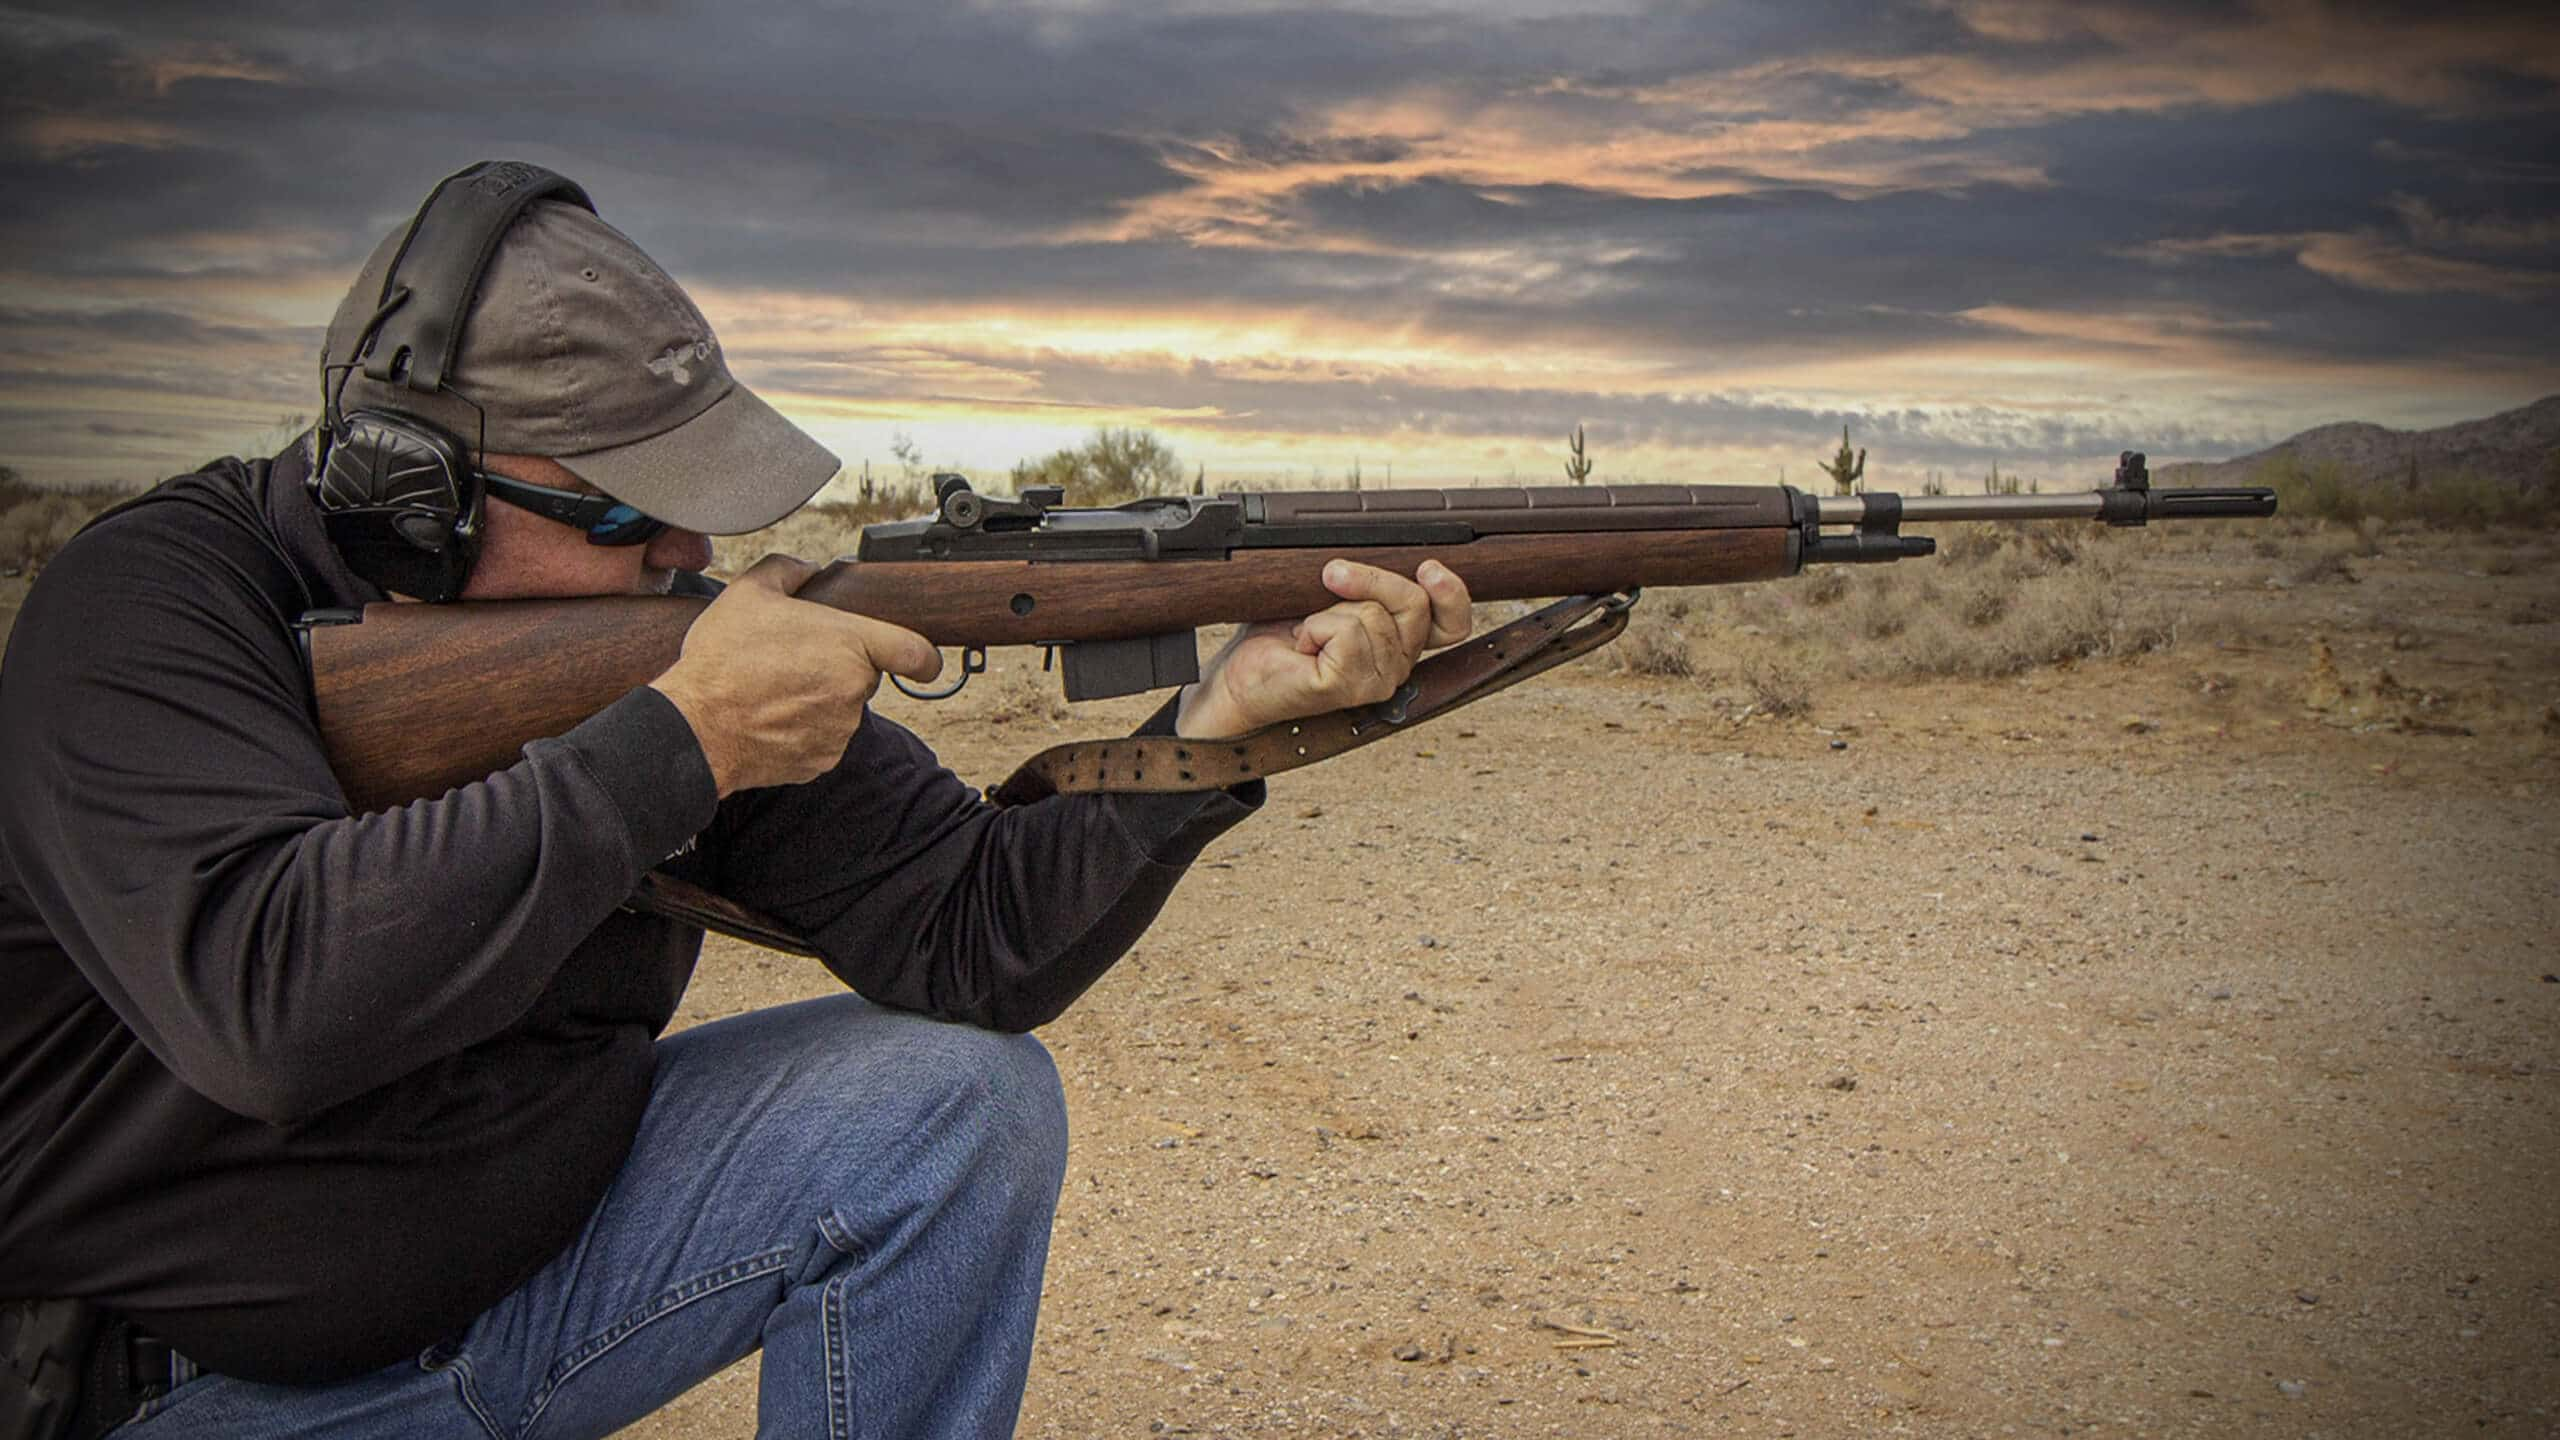 Hands-On with the M1A National Match